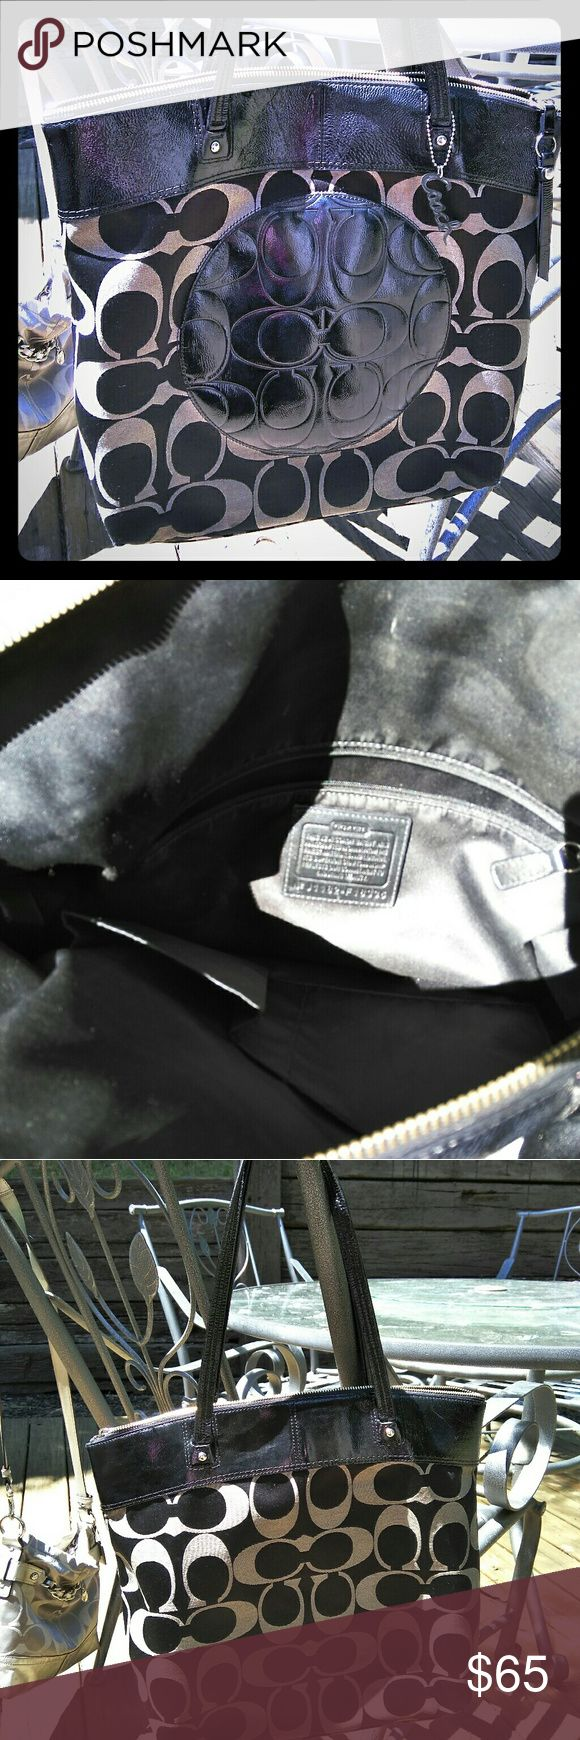 Large Black & Grey Coach Purse/Tote Large Black & Grey Coach Purse/Tote Coach Bags Totes